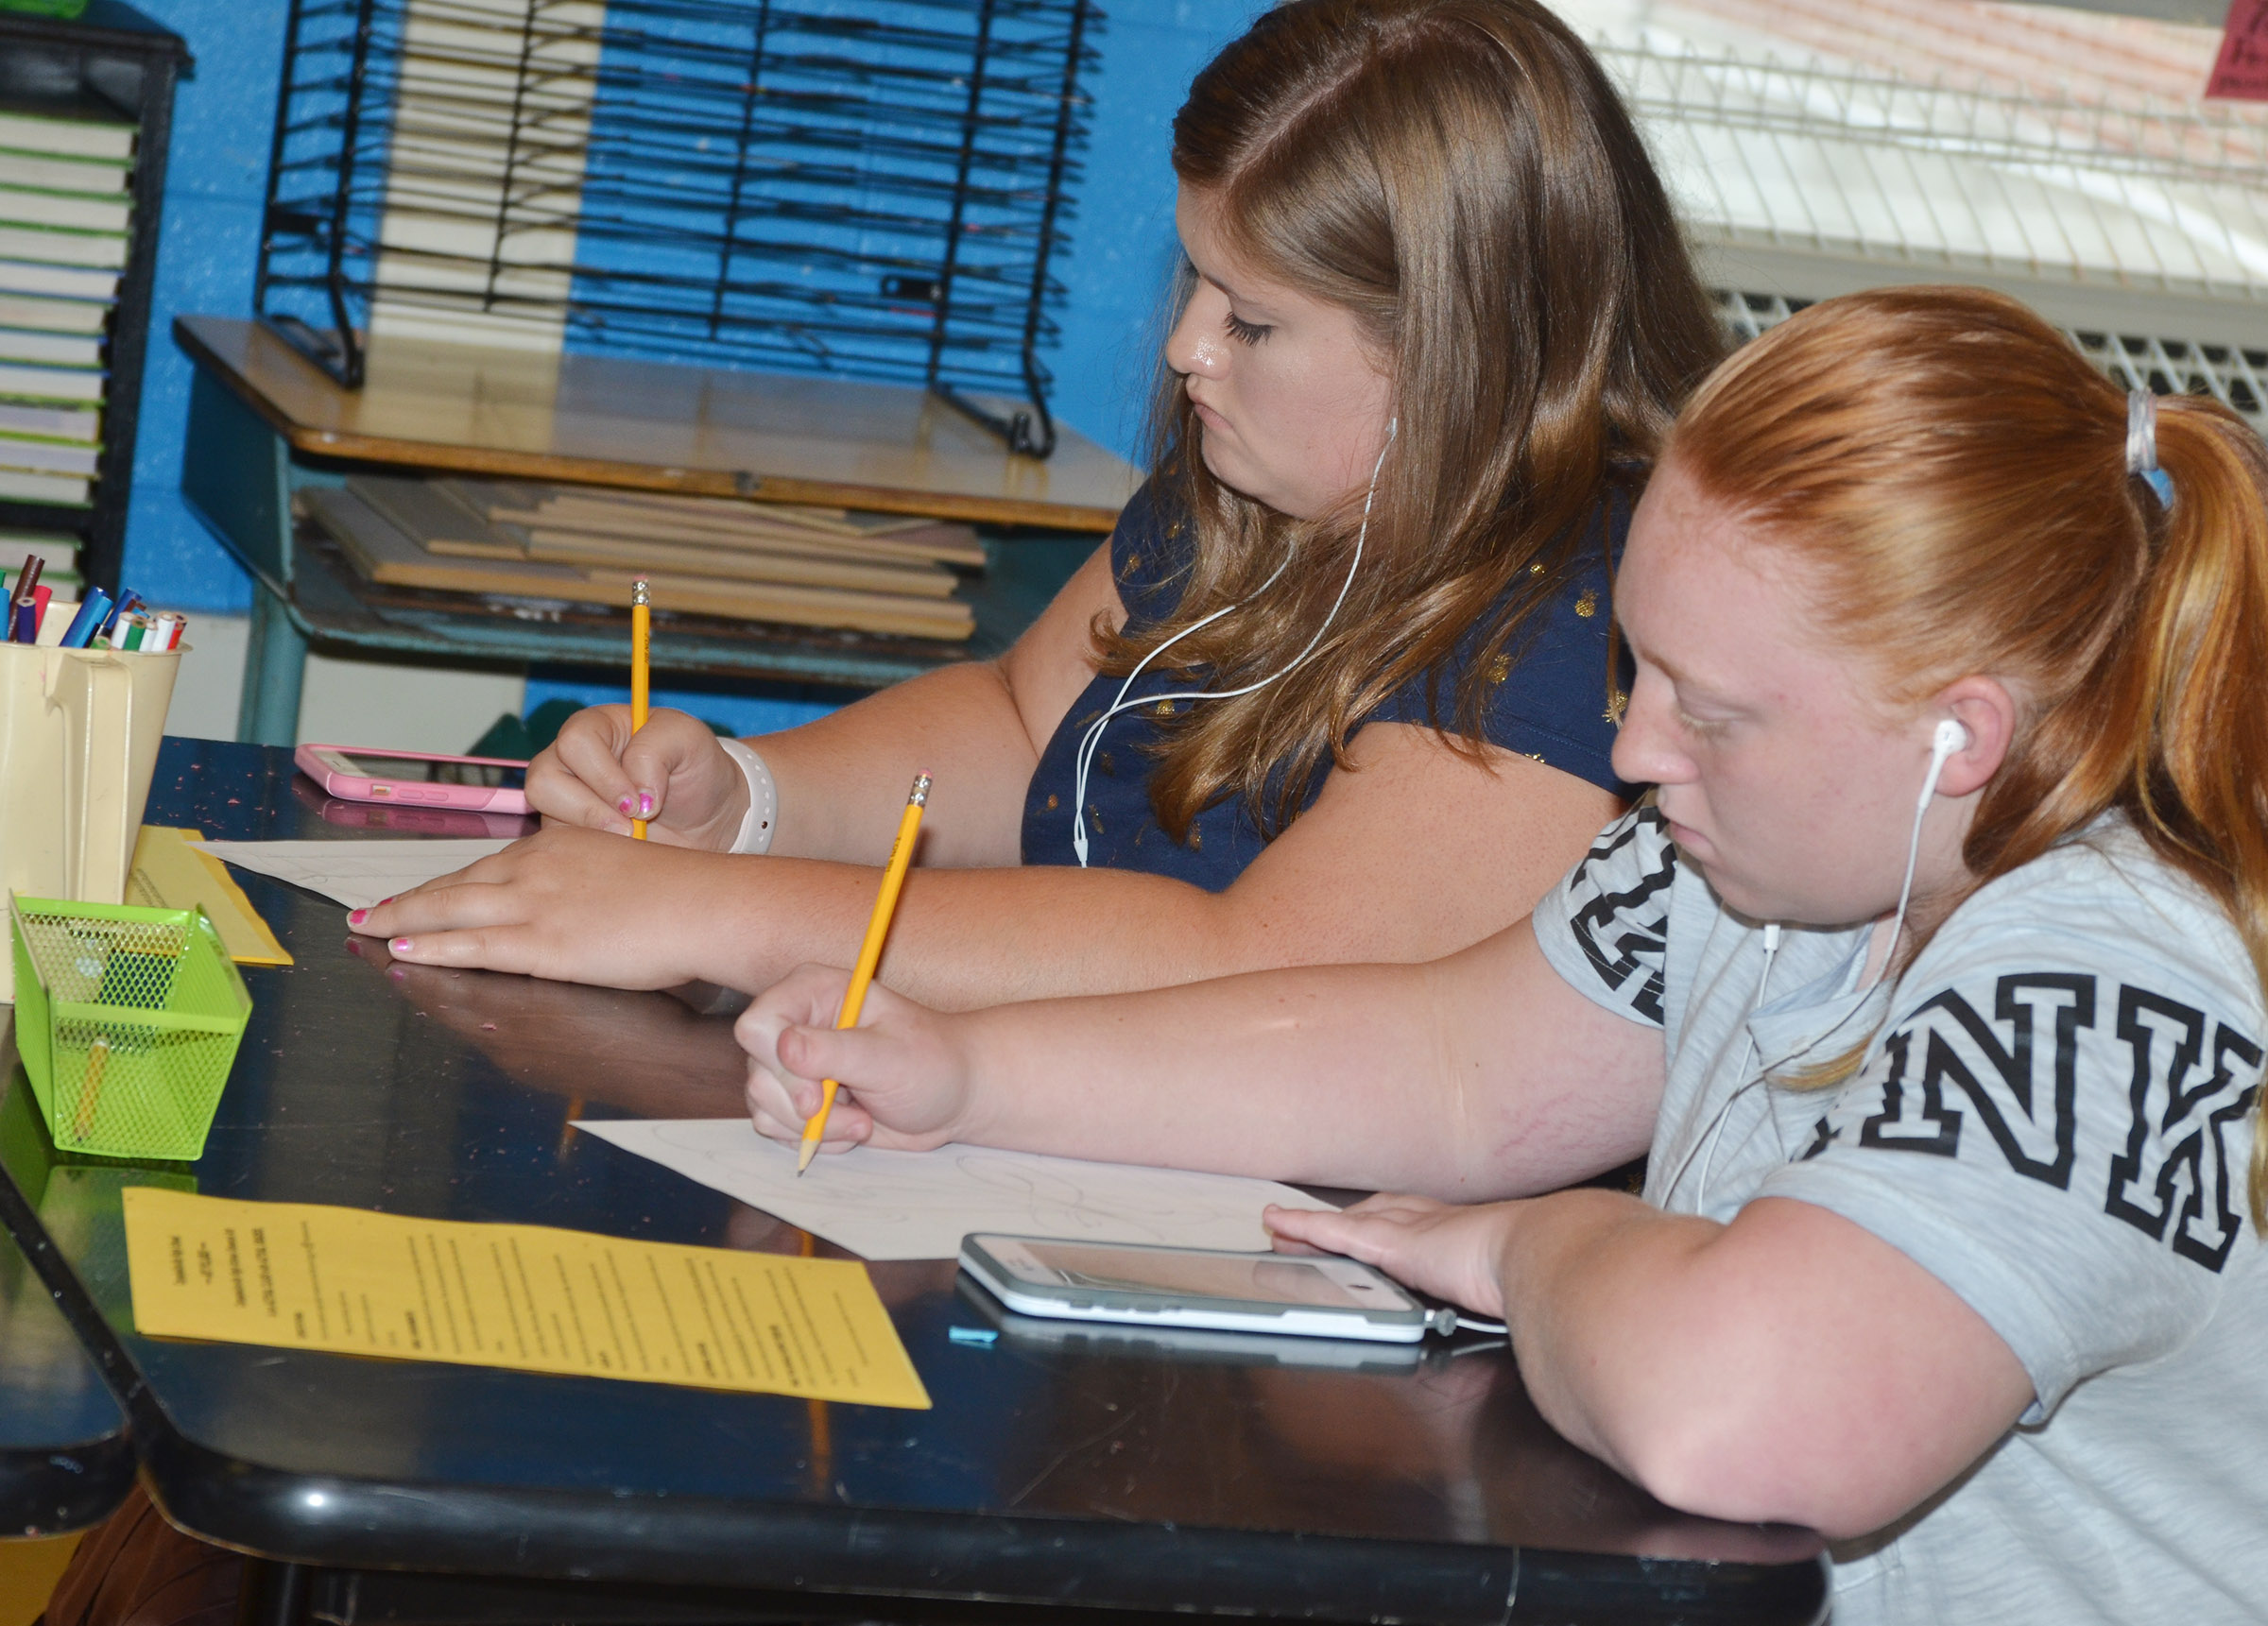 CHS sophomores Aleah Knifley, at left, and Haleigh Murphy draw in their art class.